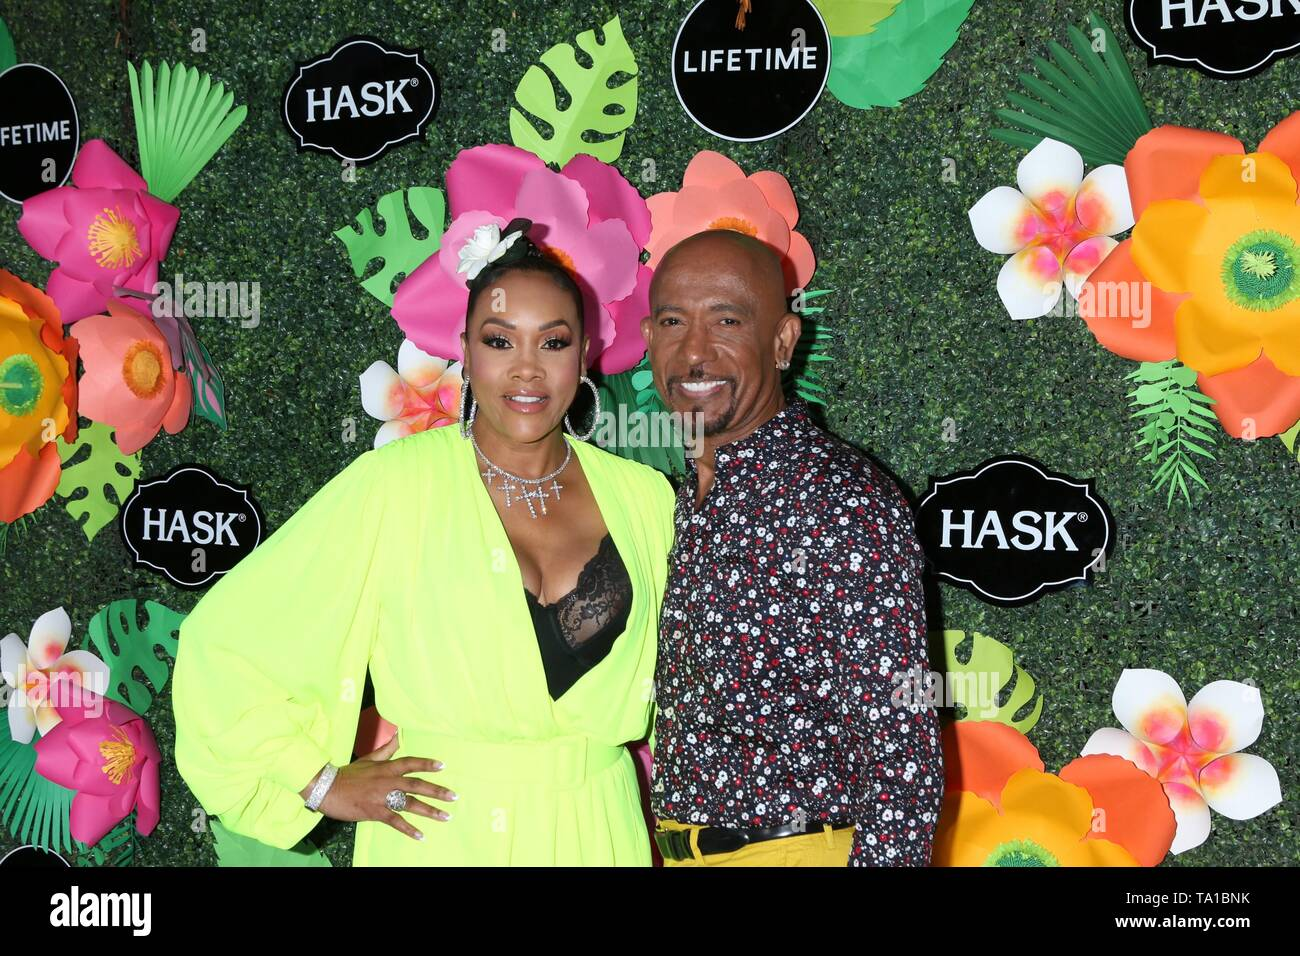 Los Angeles, CA, USA. 20th May, 2019. Vivica A Fox, Montel Williams at arrivals for Lifetime's Summer Luau, W Los Angeles Wet Deck, Los Angeles, CA May 20, 2019. Credit: Priscilla Grant/Everett Collection/Alamy Live News - Stock Image